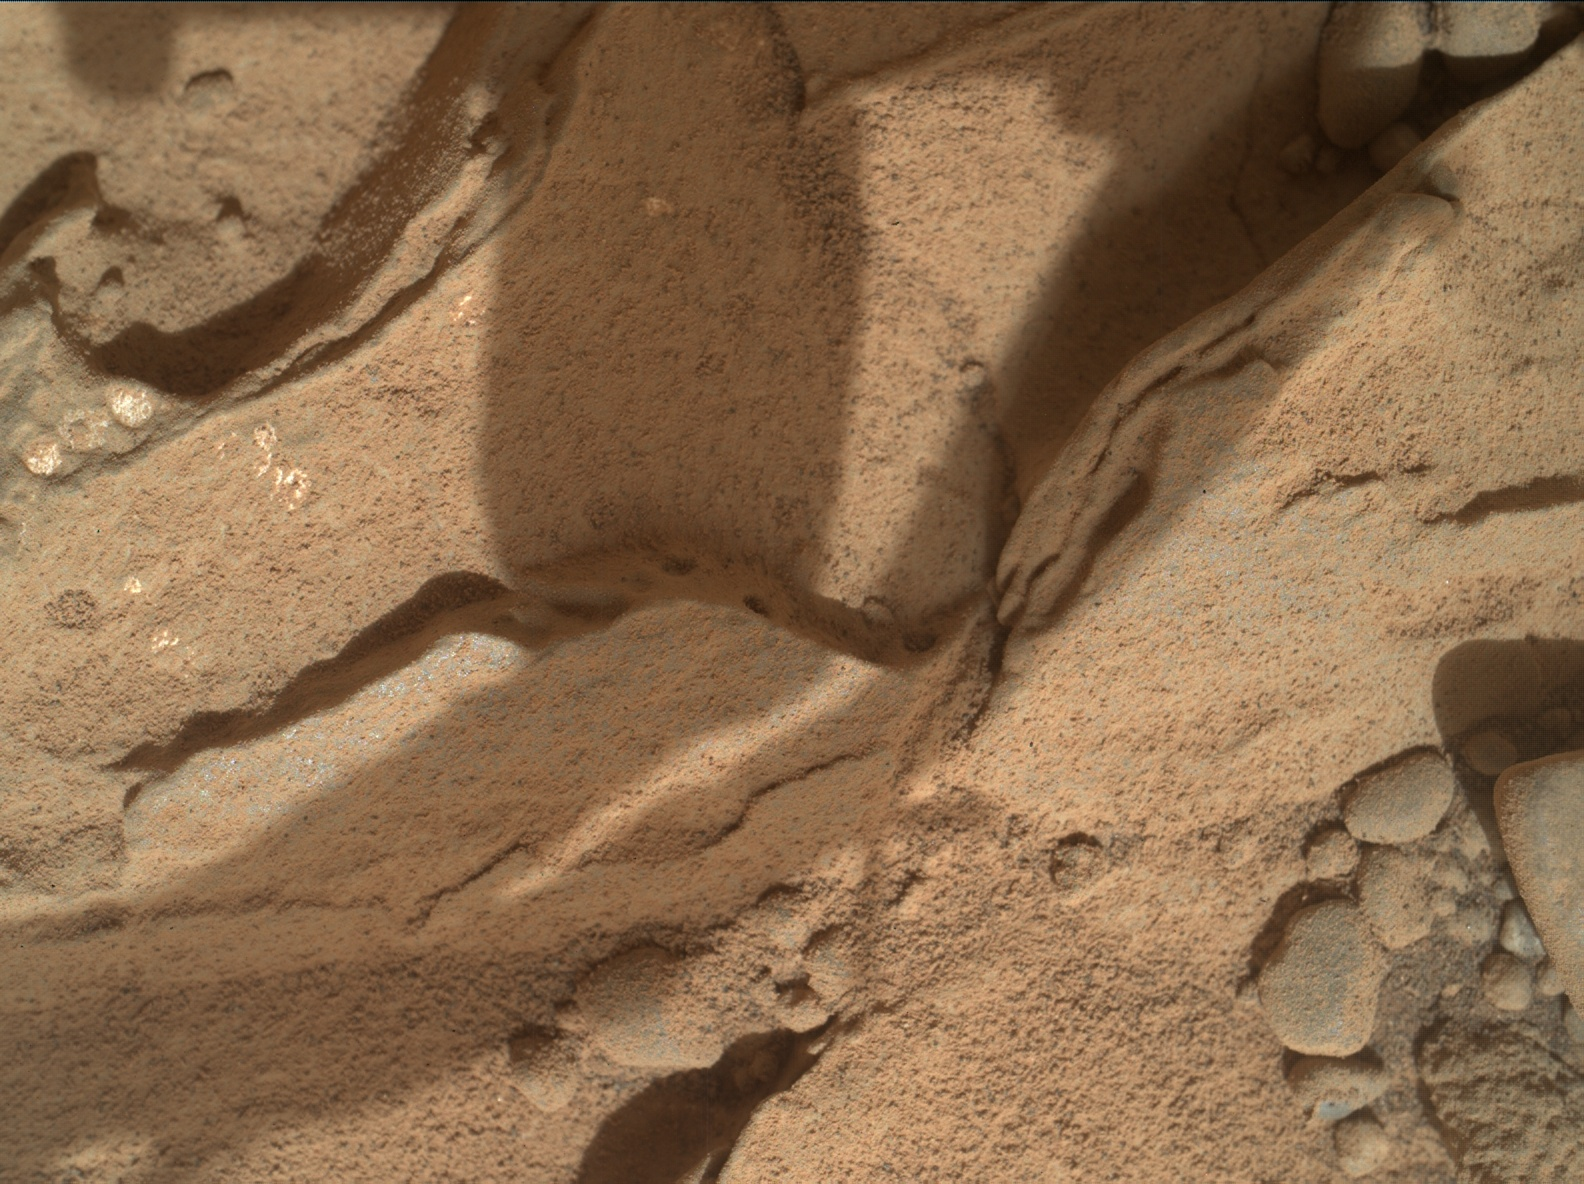 Nasa's Mars rover Curiosity acquired this image using its Mars Hand Lens Imager (MAHLI) on Sol 181